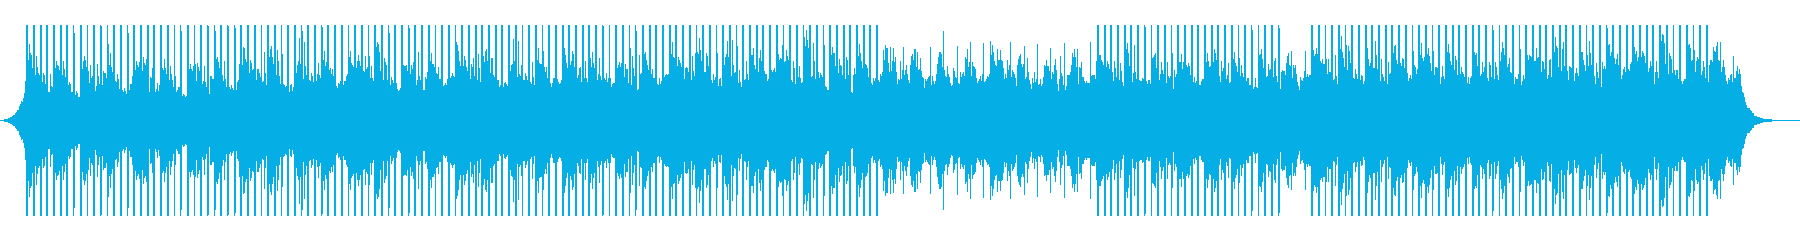 For Business Presentation's reproduced waveform